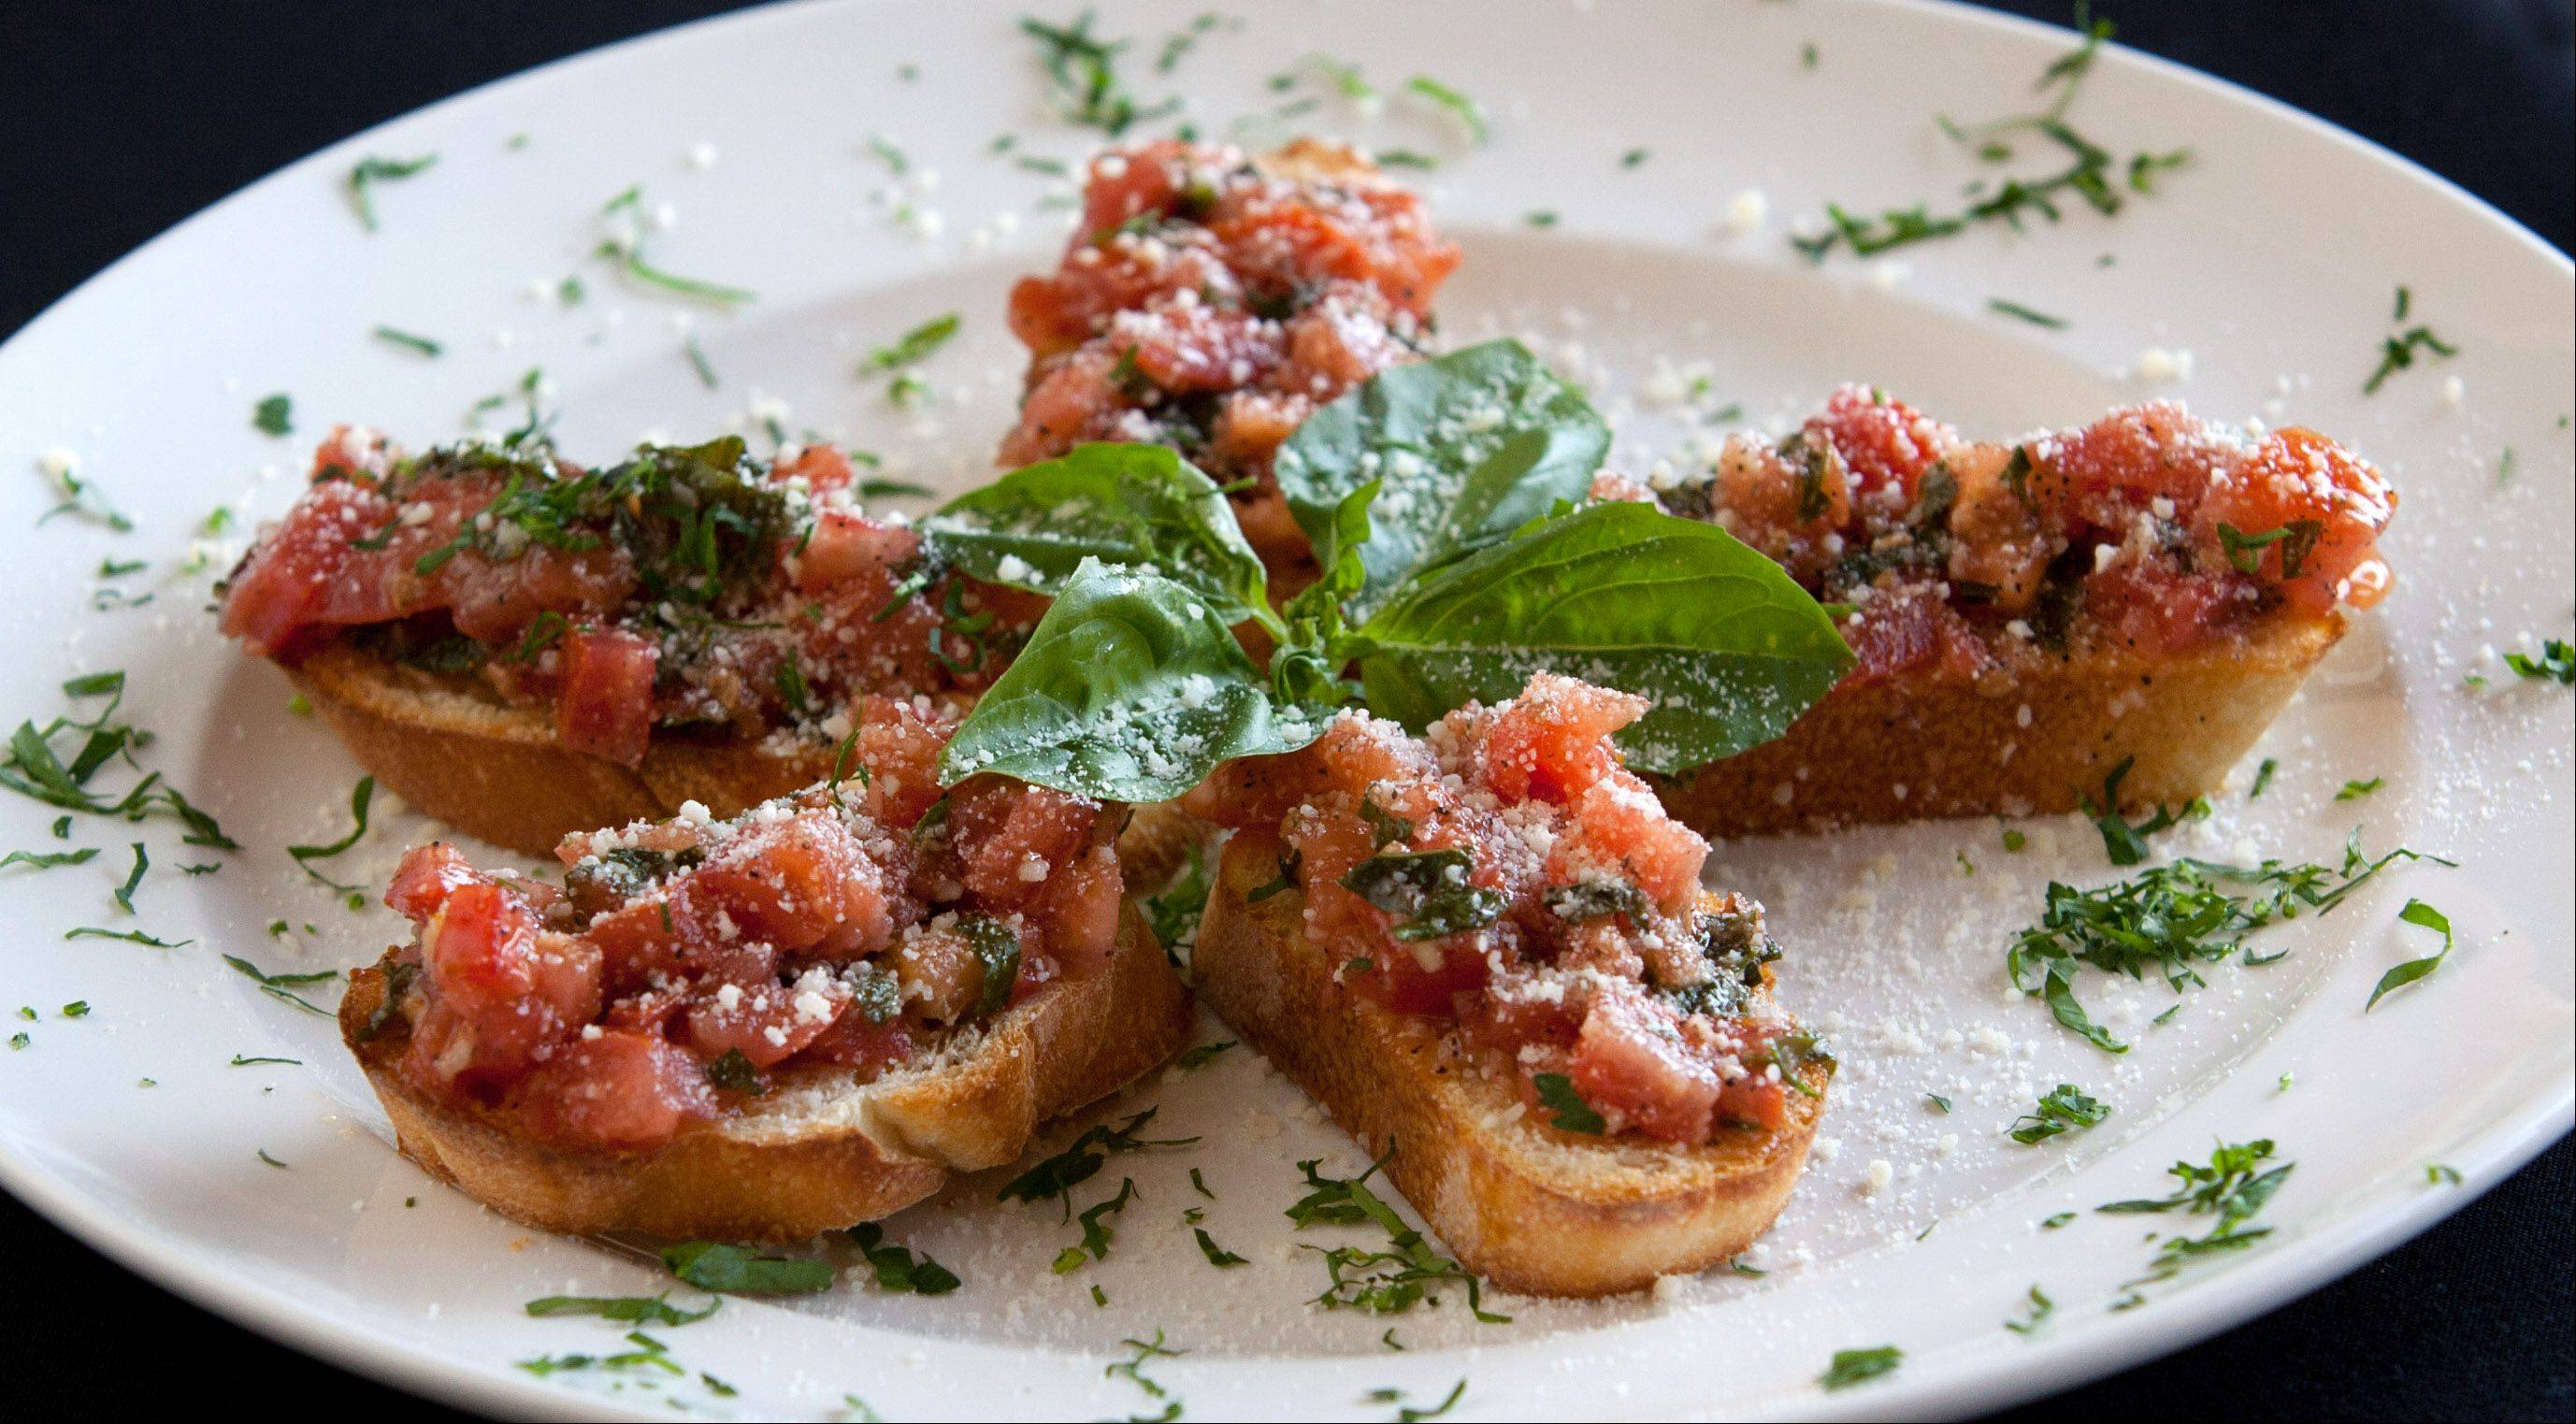 Toasted Italian bread topped with fresh plum tomatoes, basil, garlic and olive oil is a nice way to start a meal at Navarro's of Naperville.